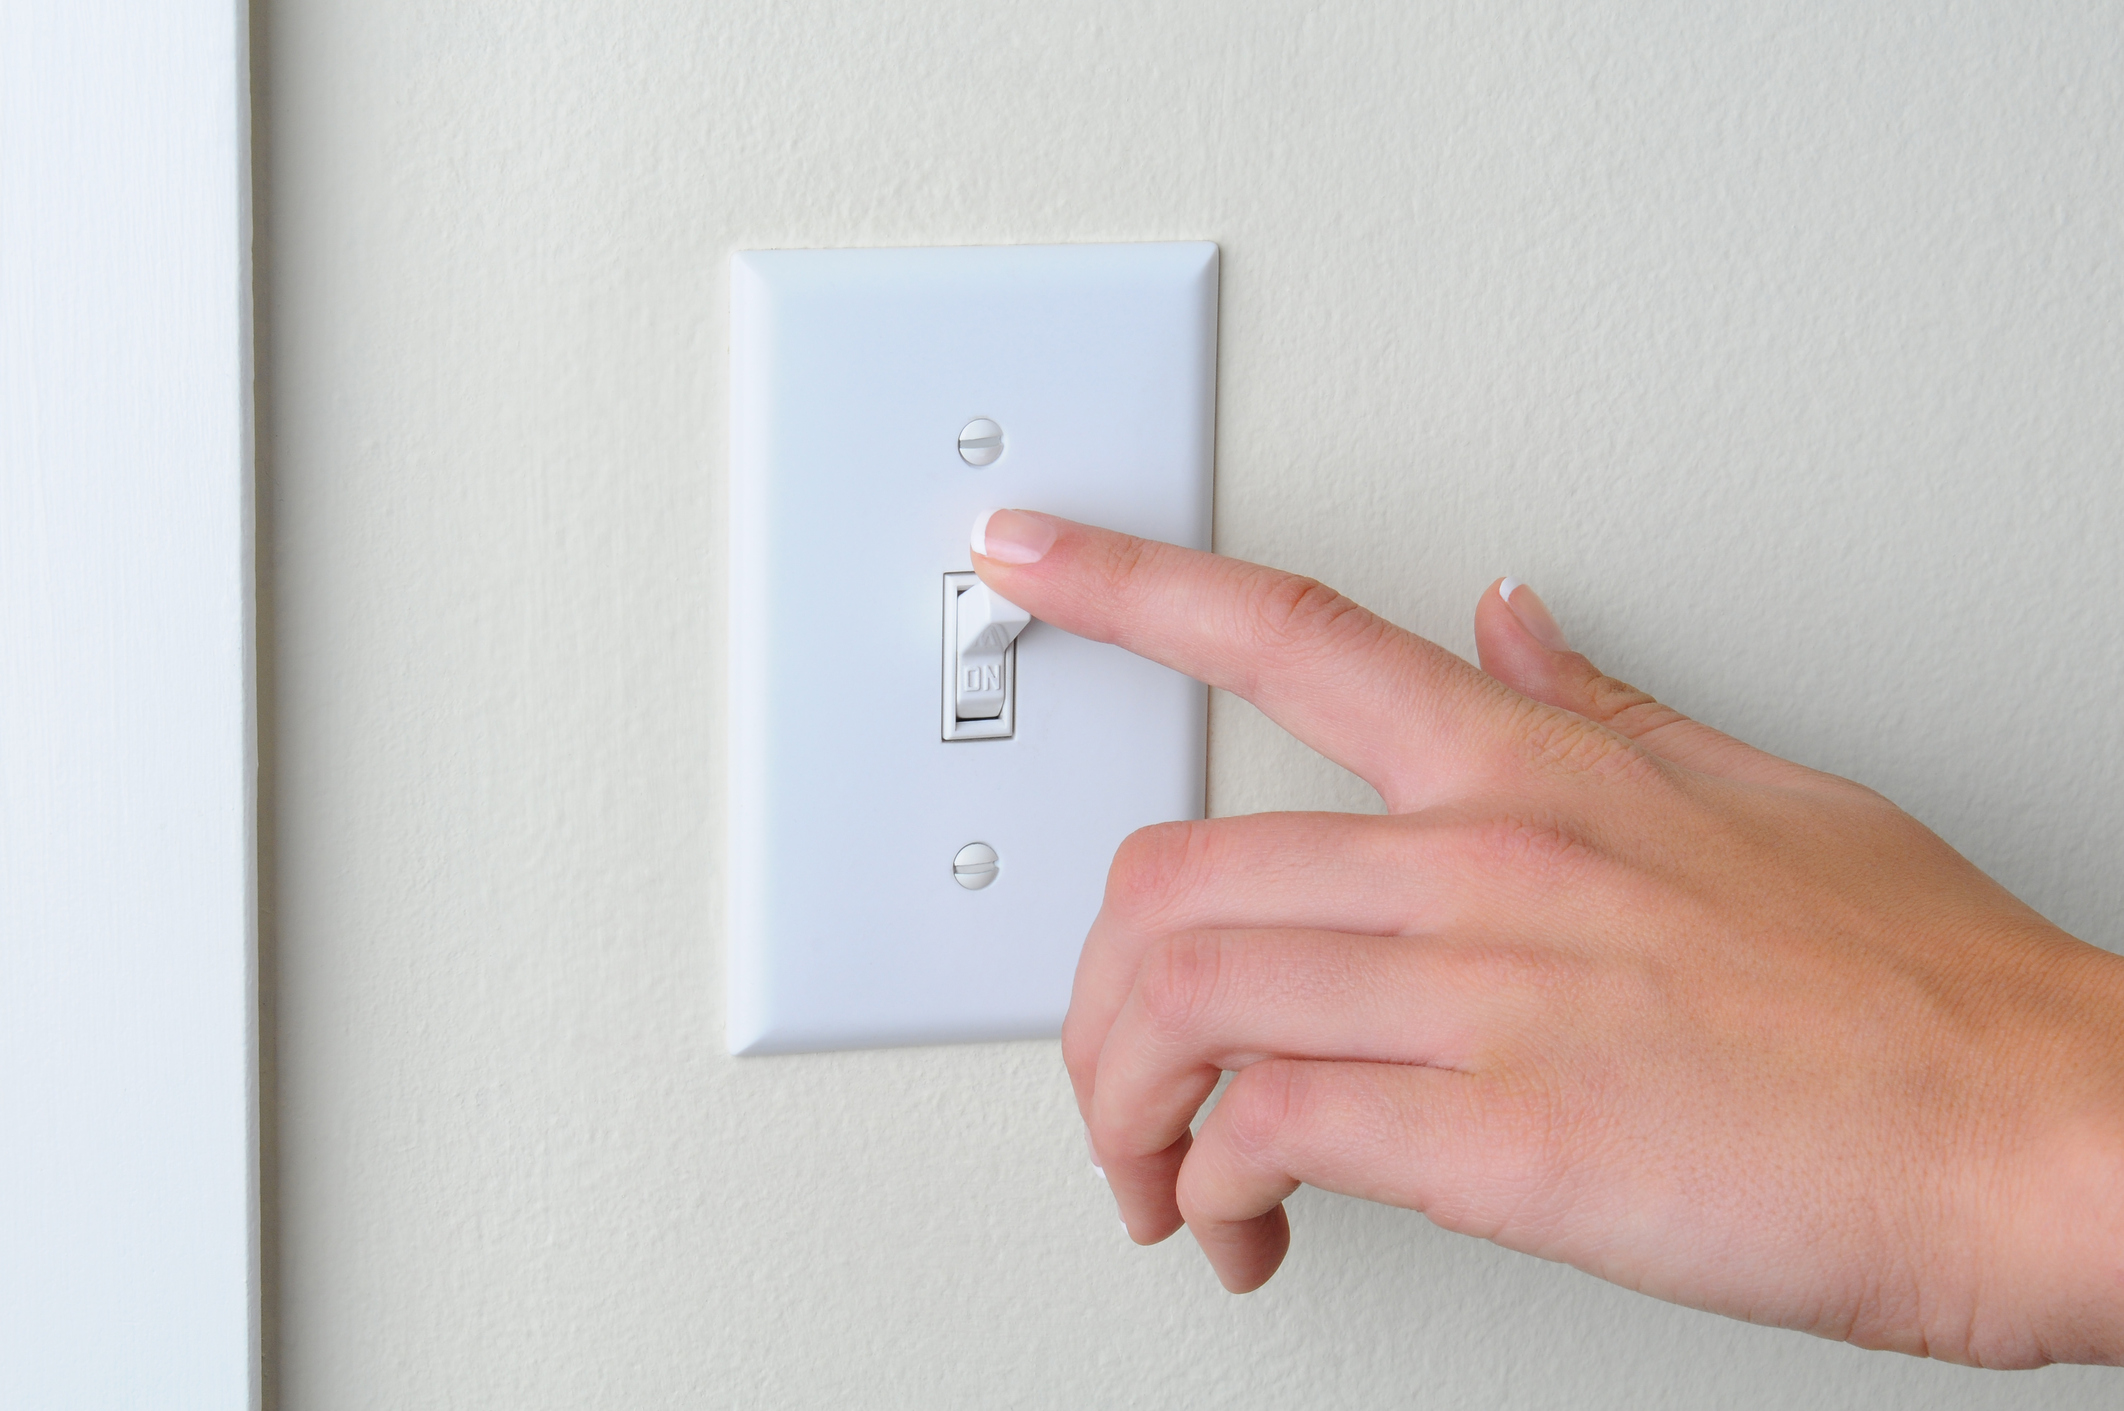 Finger touching light switch